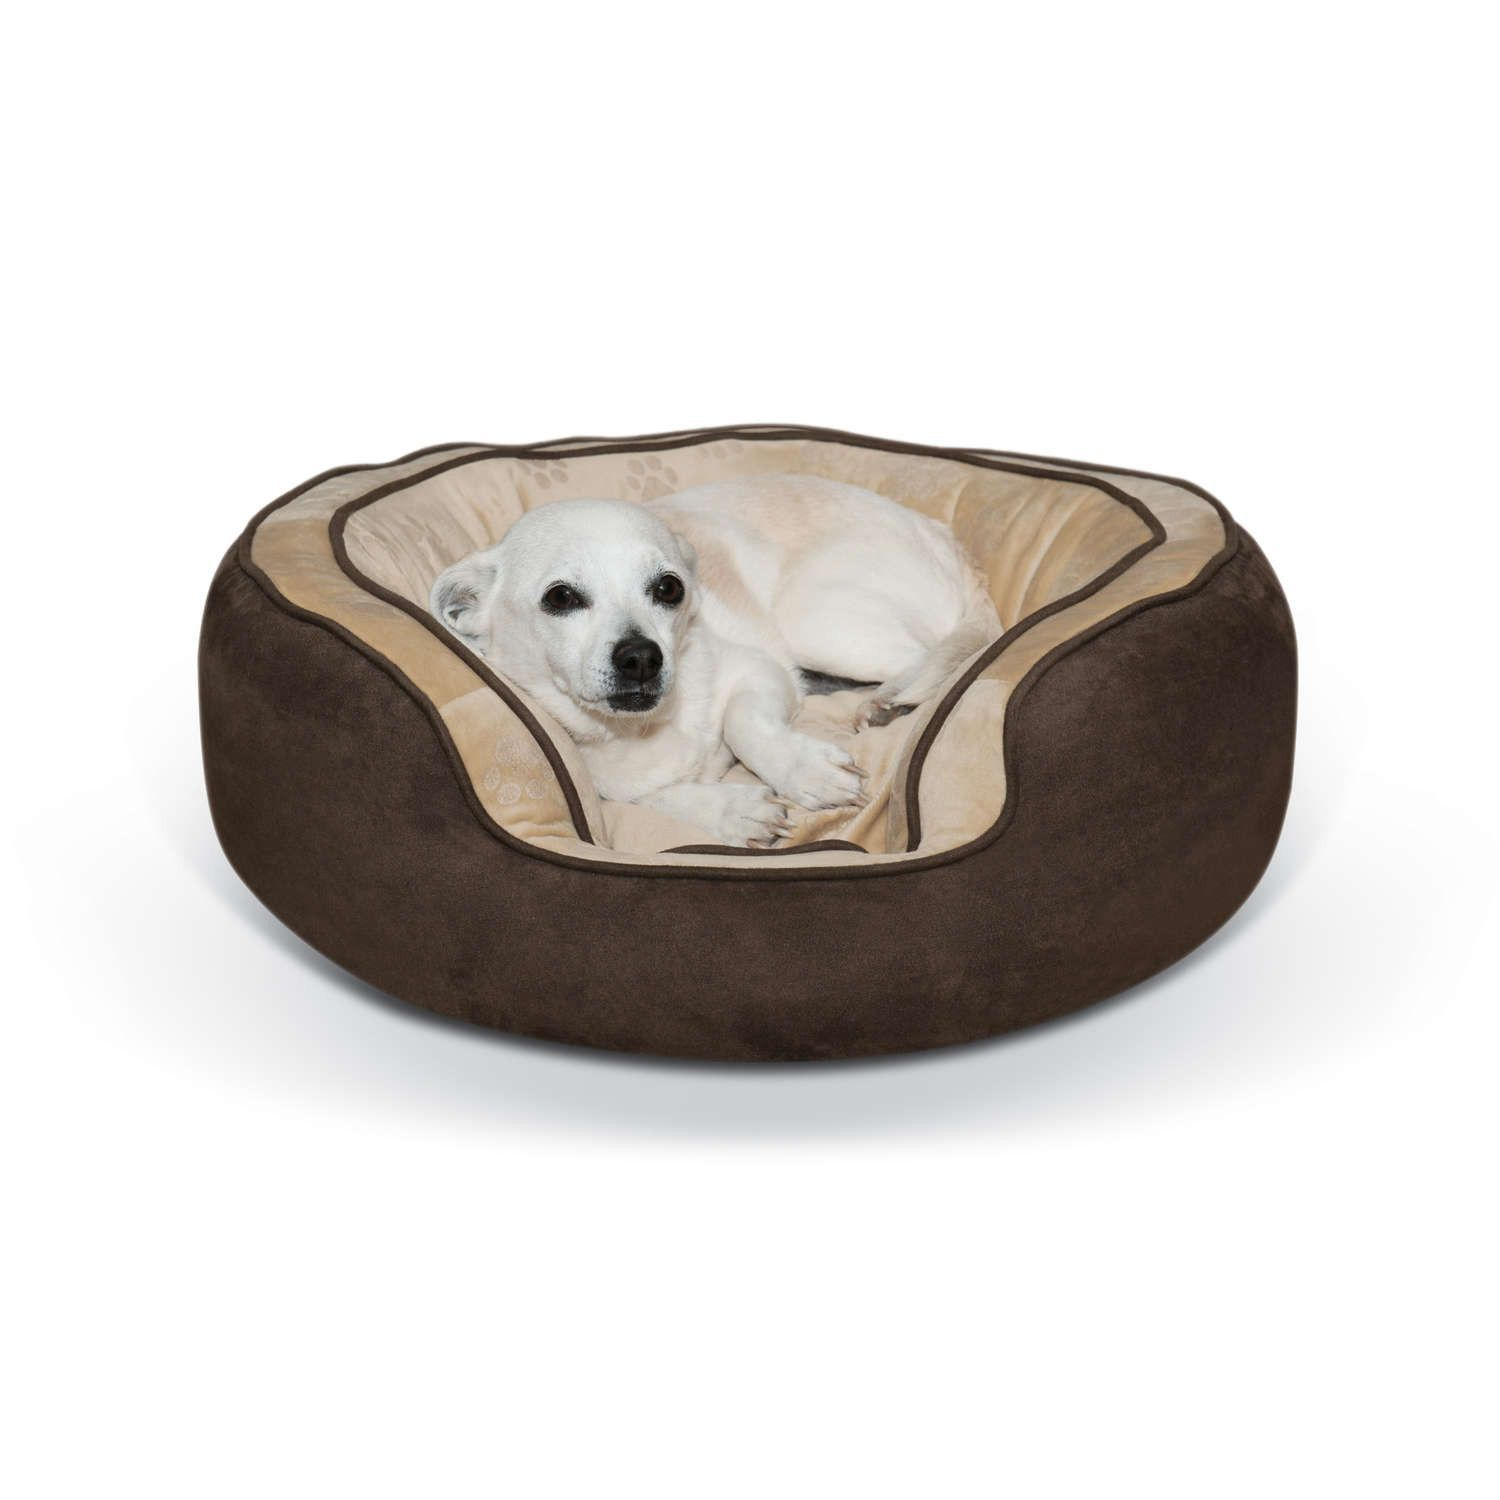 K&H Pet Products Round N Plush Bolster Dog Bed Kh7004